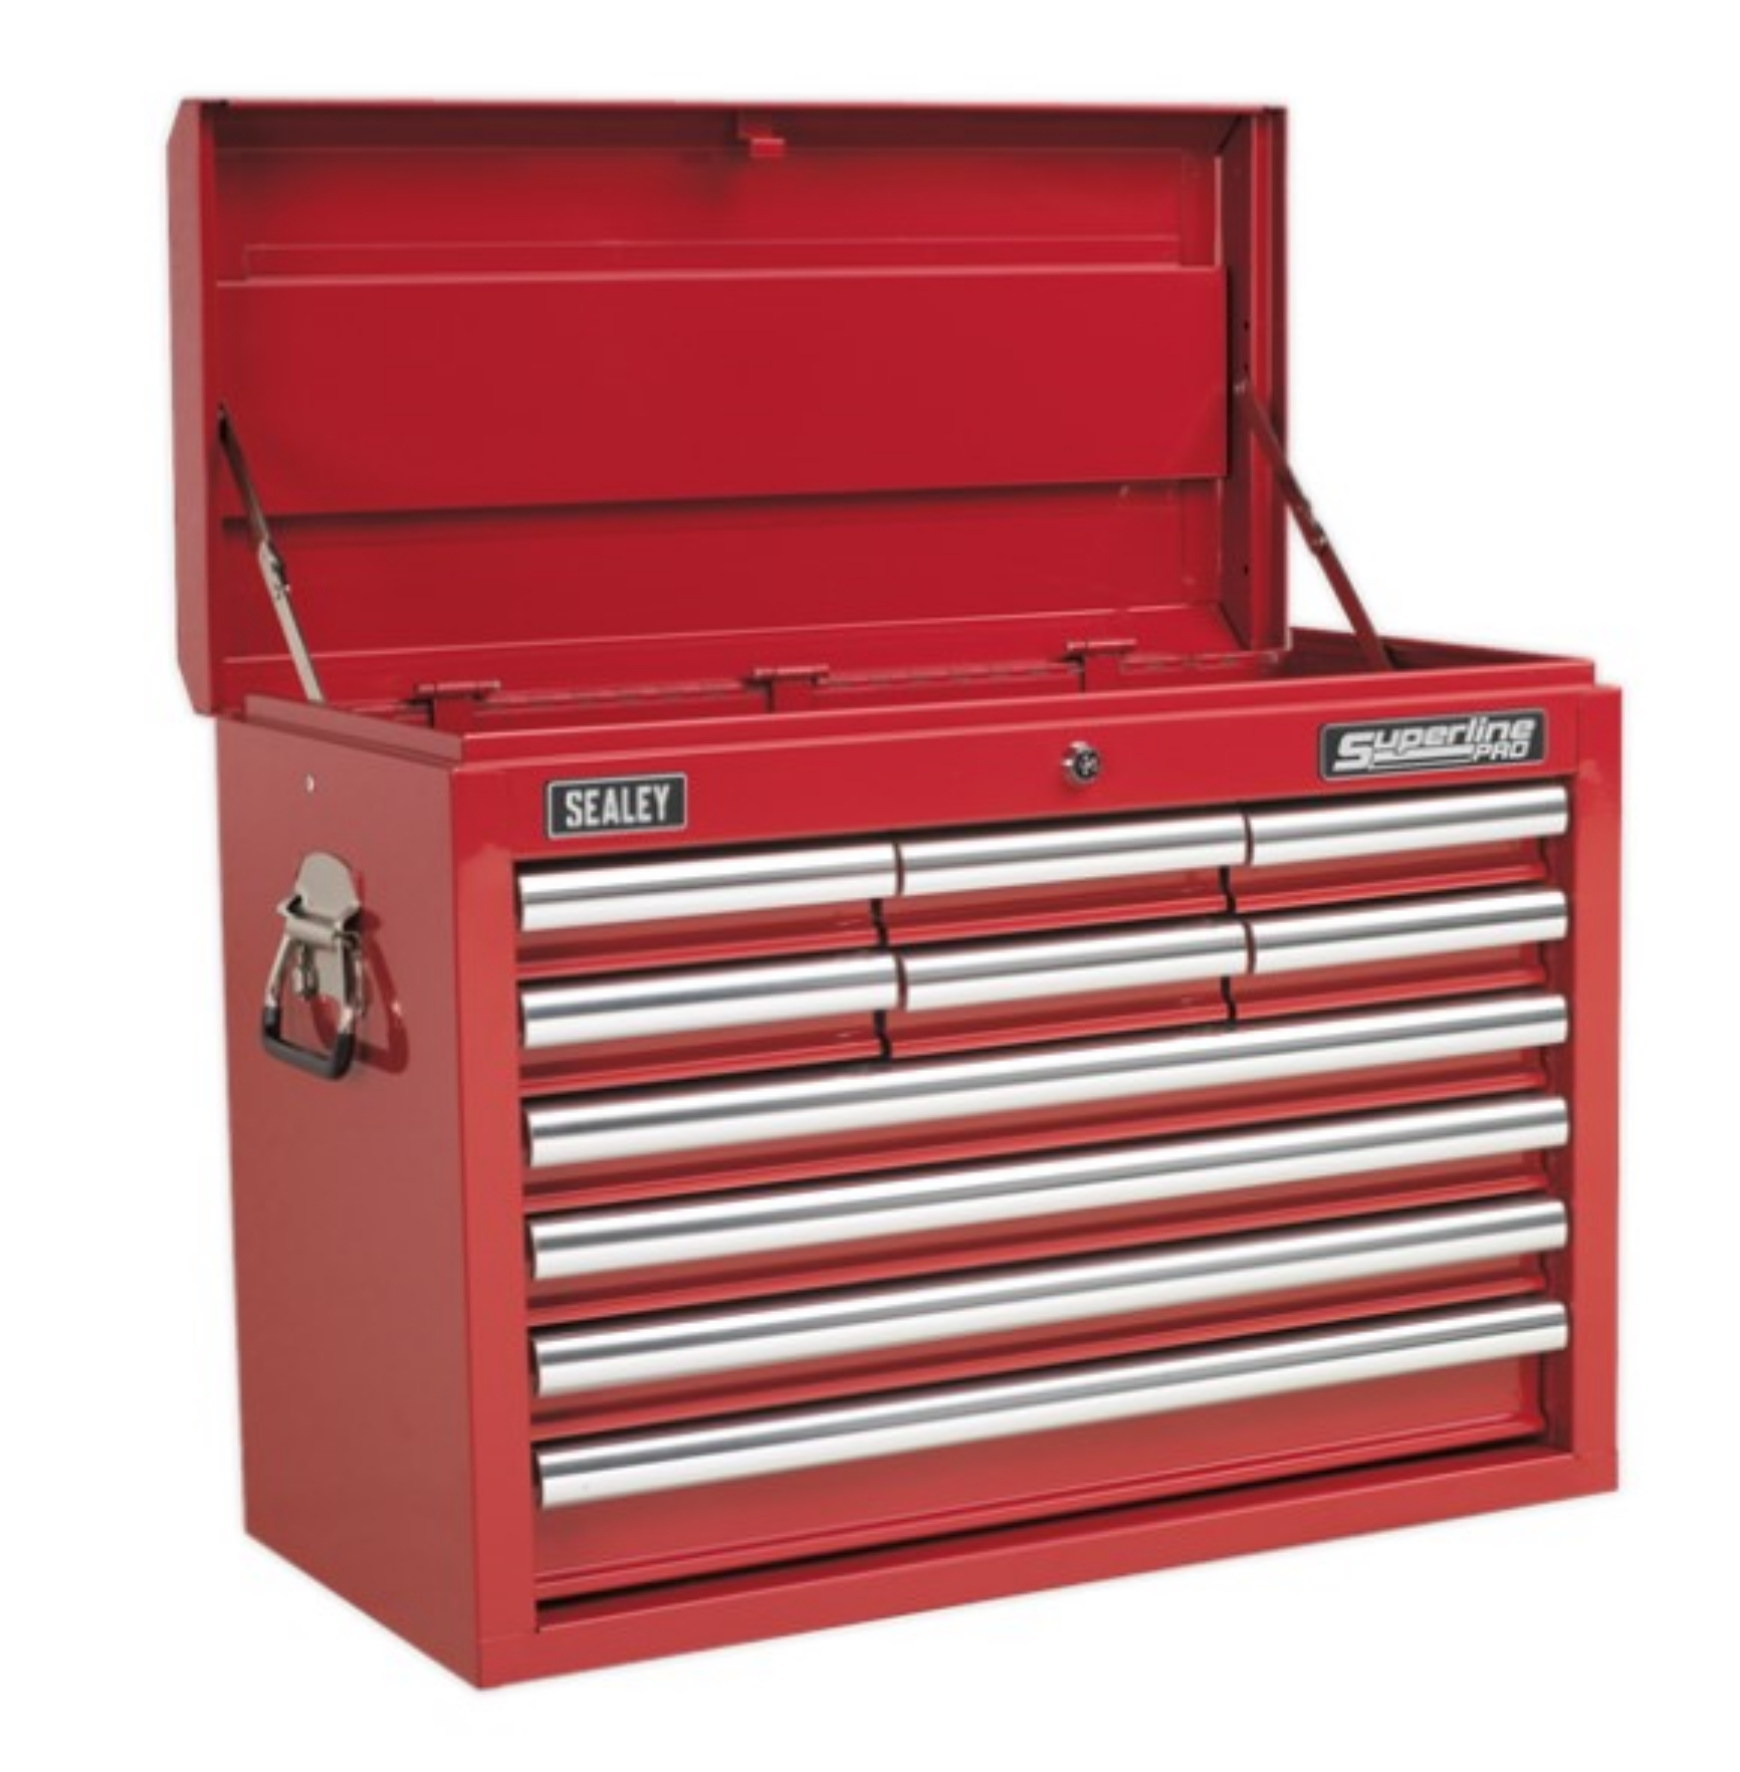 Topchest 10 Drawer c/w Ball Bearing Runners